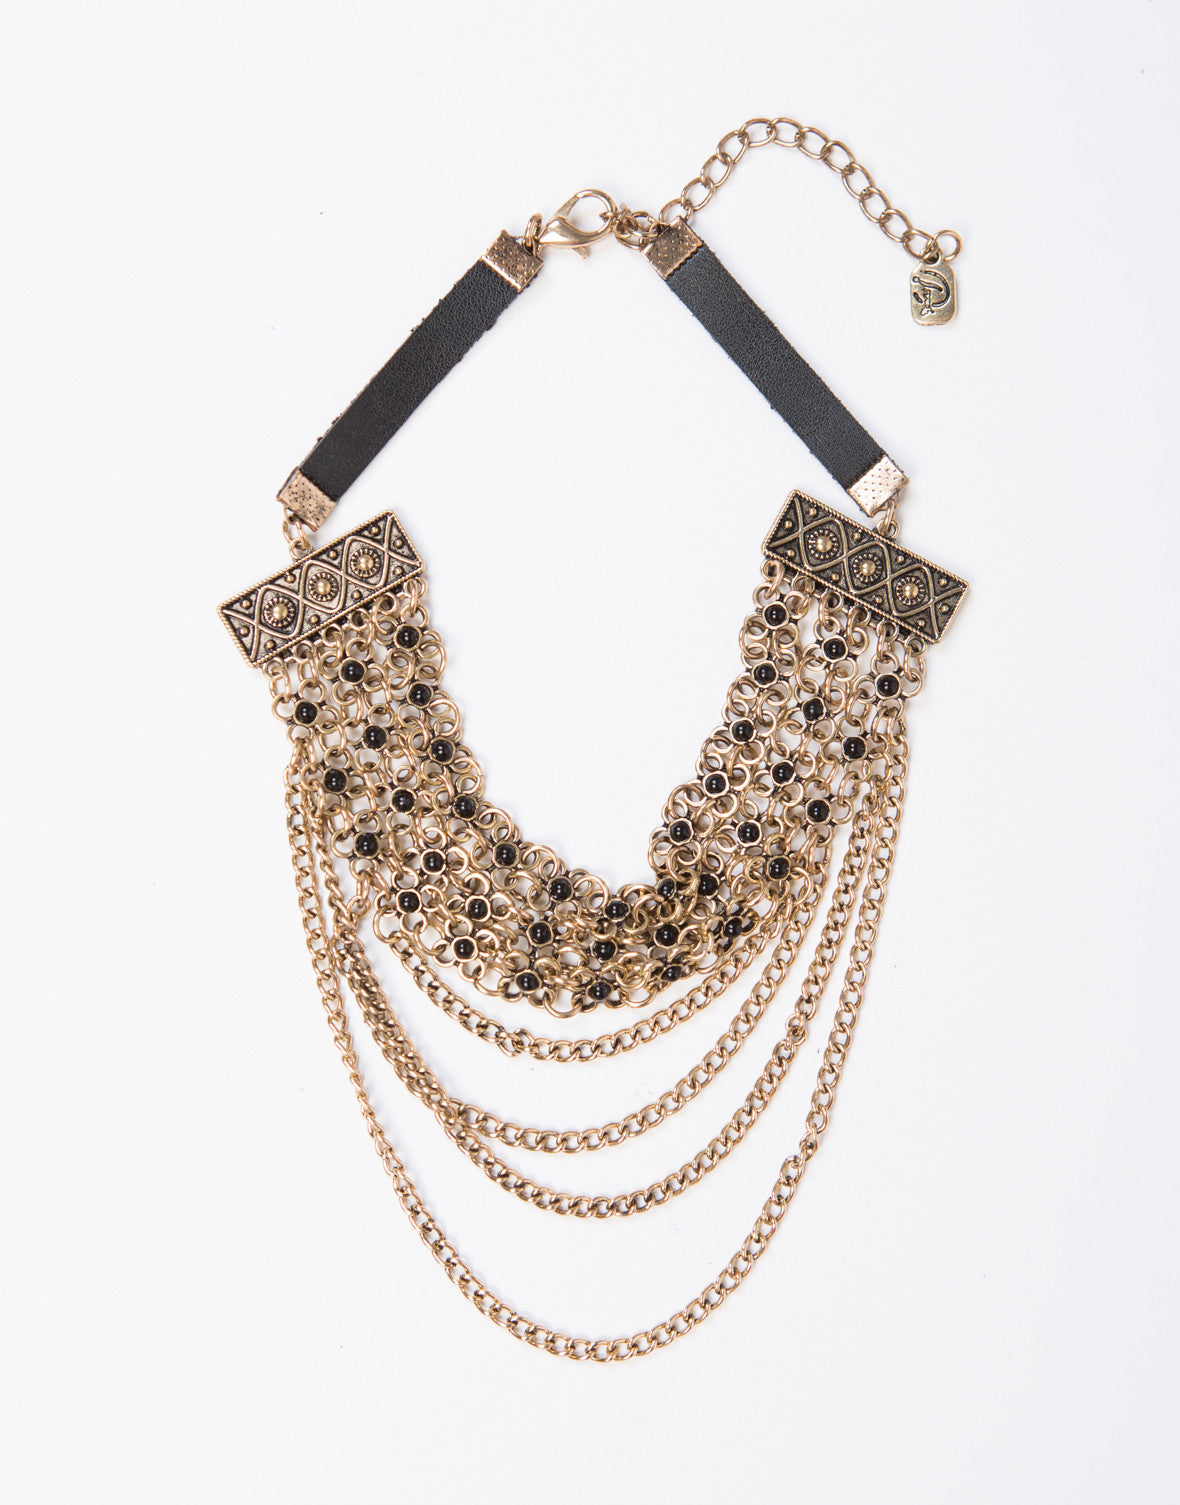 Triple Chained Floral Necklace